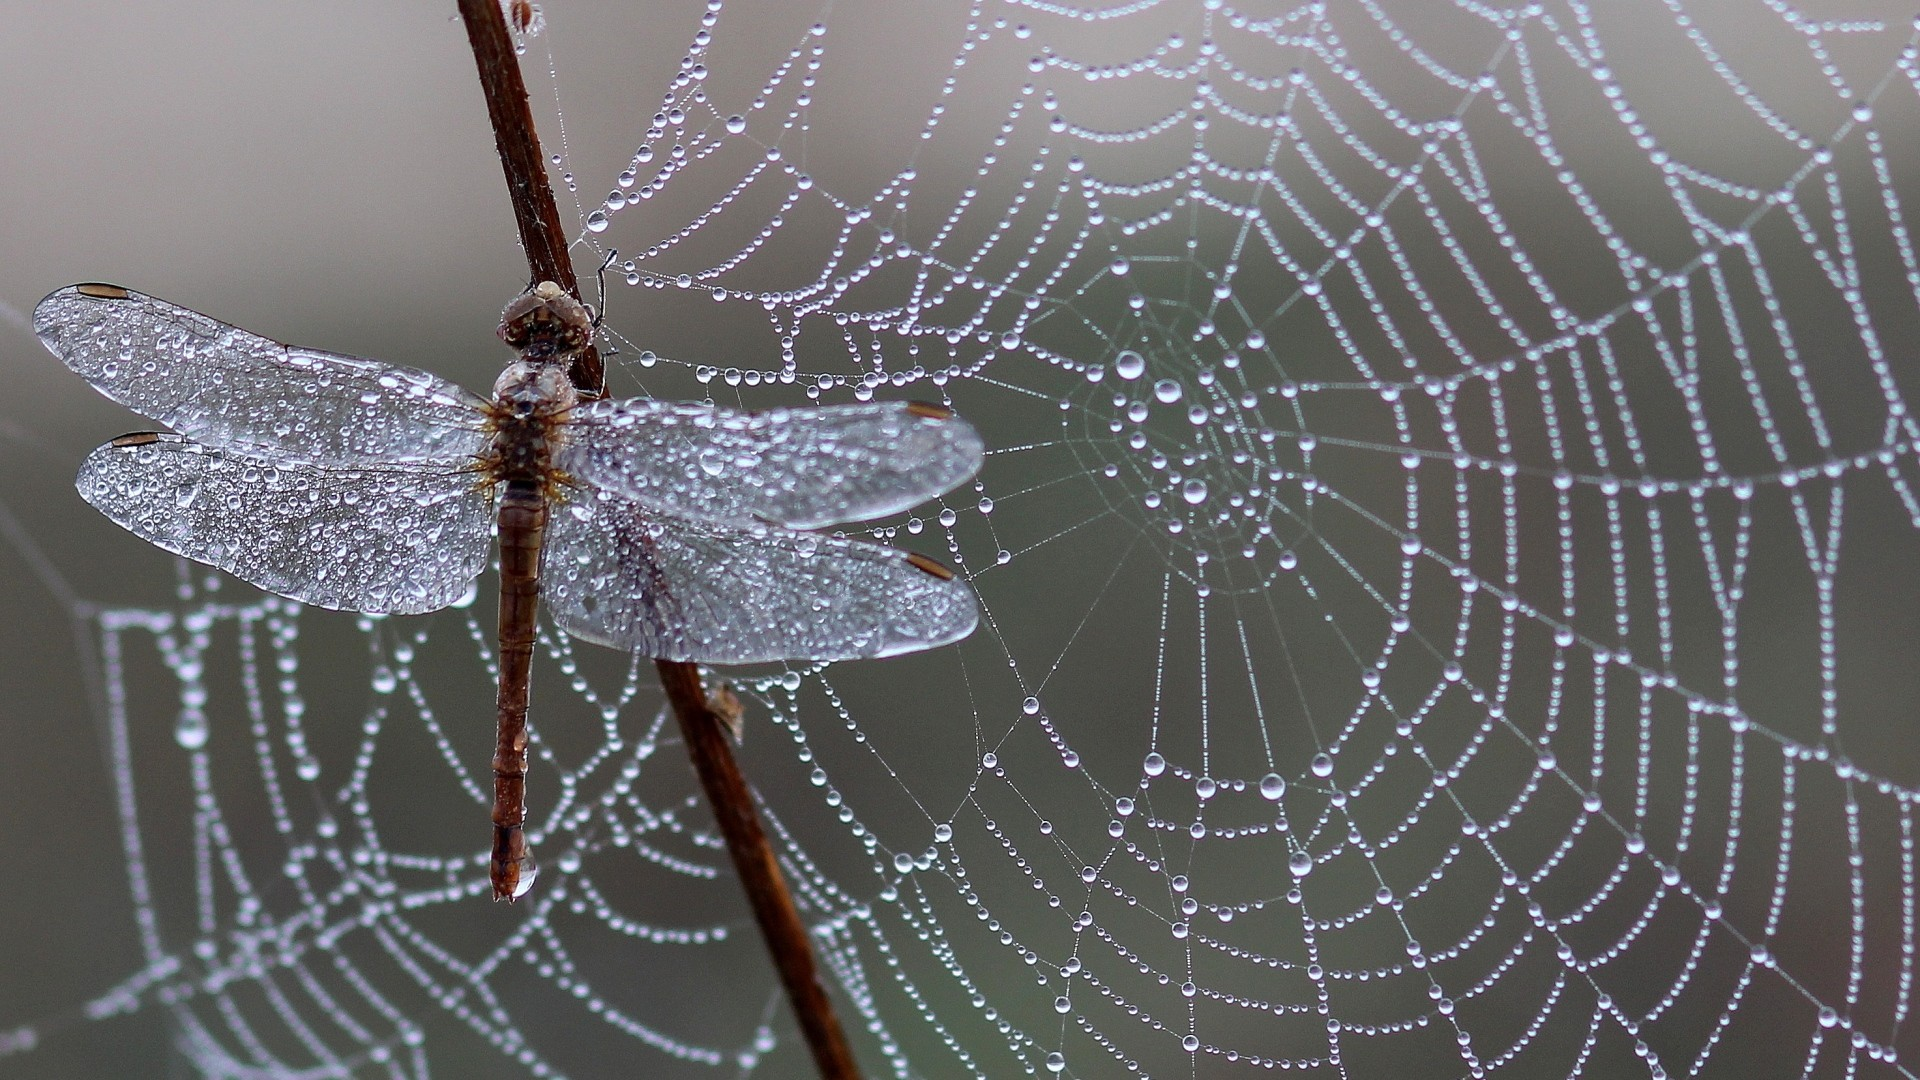 Wallpaper dragonfly, spider web, ice, drops